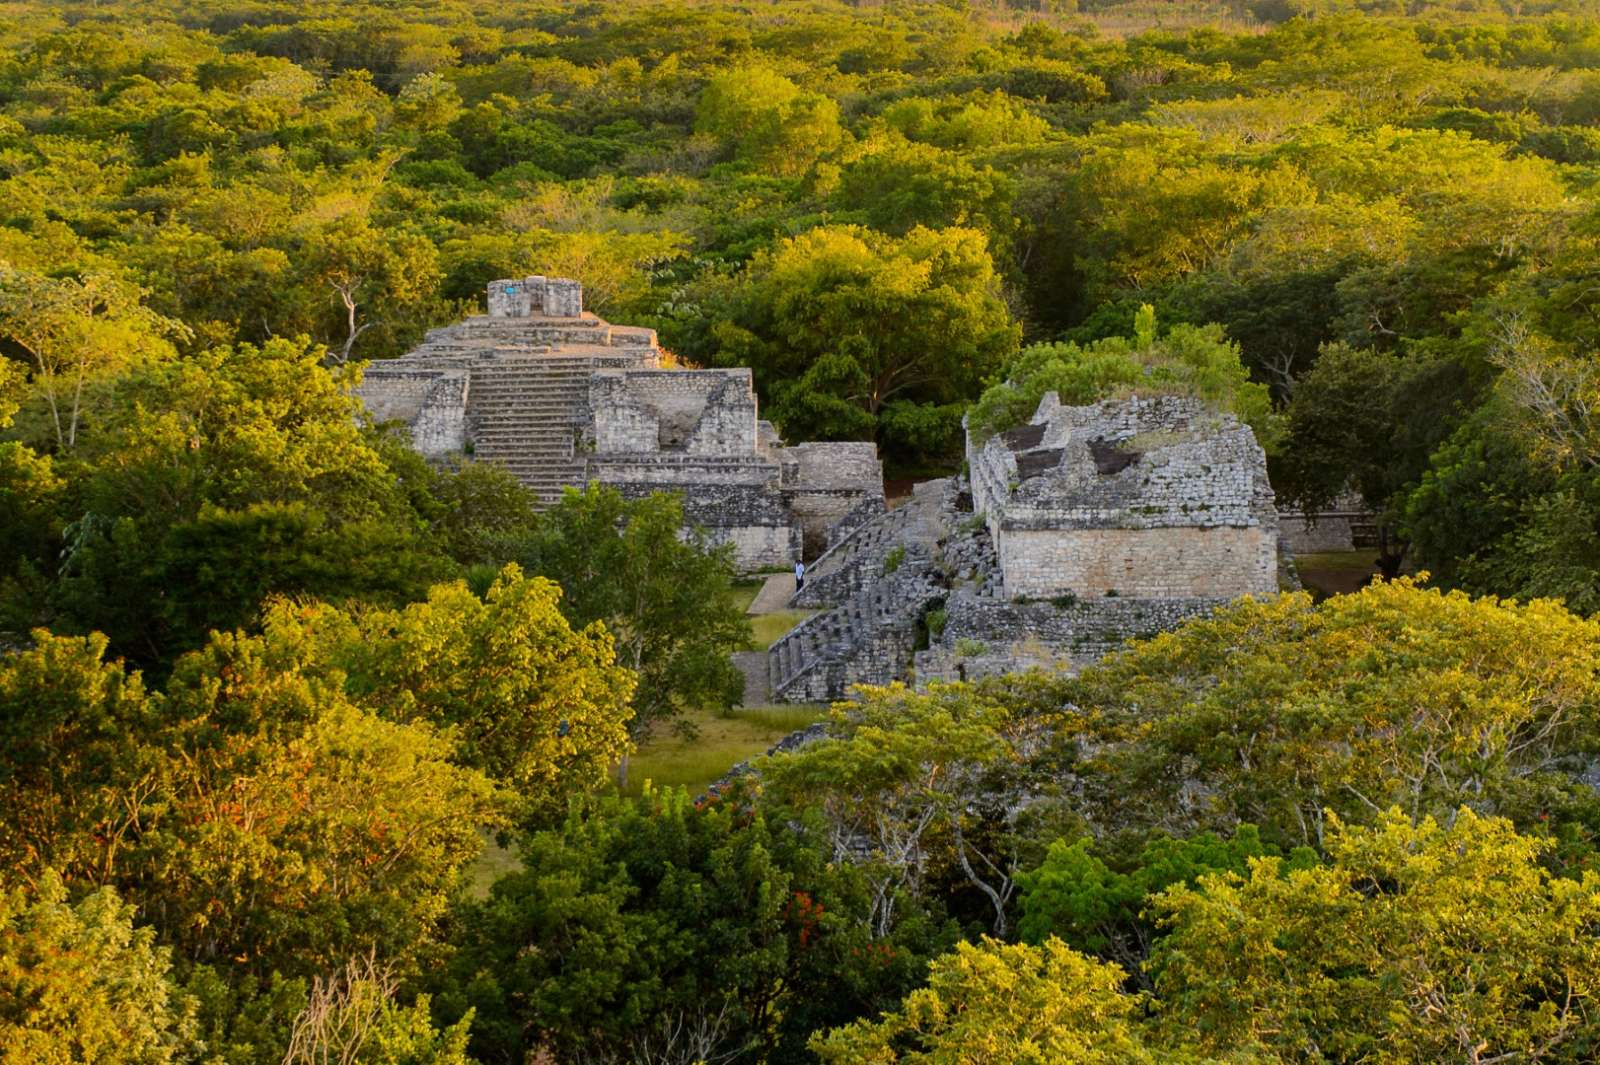 Ek' Balam In The Jungle, A Yucatec Maya Archaeological Site, Temozon, Yucatan, Mexico. It Was The Seat Of A Mayan Kingdom From The Preclassic Until The Postclassic Period